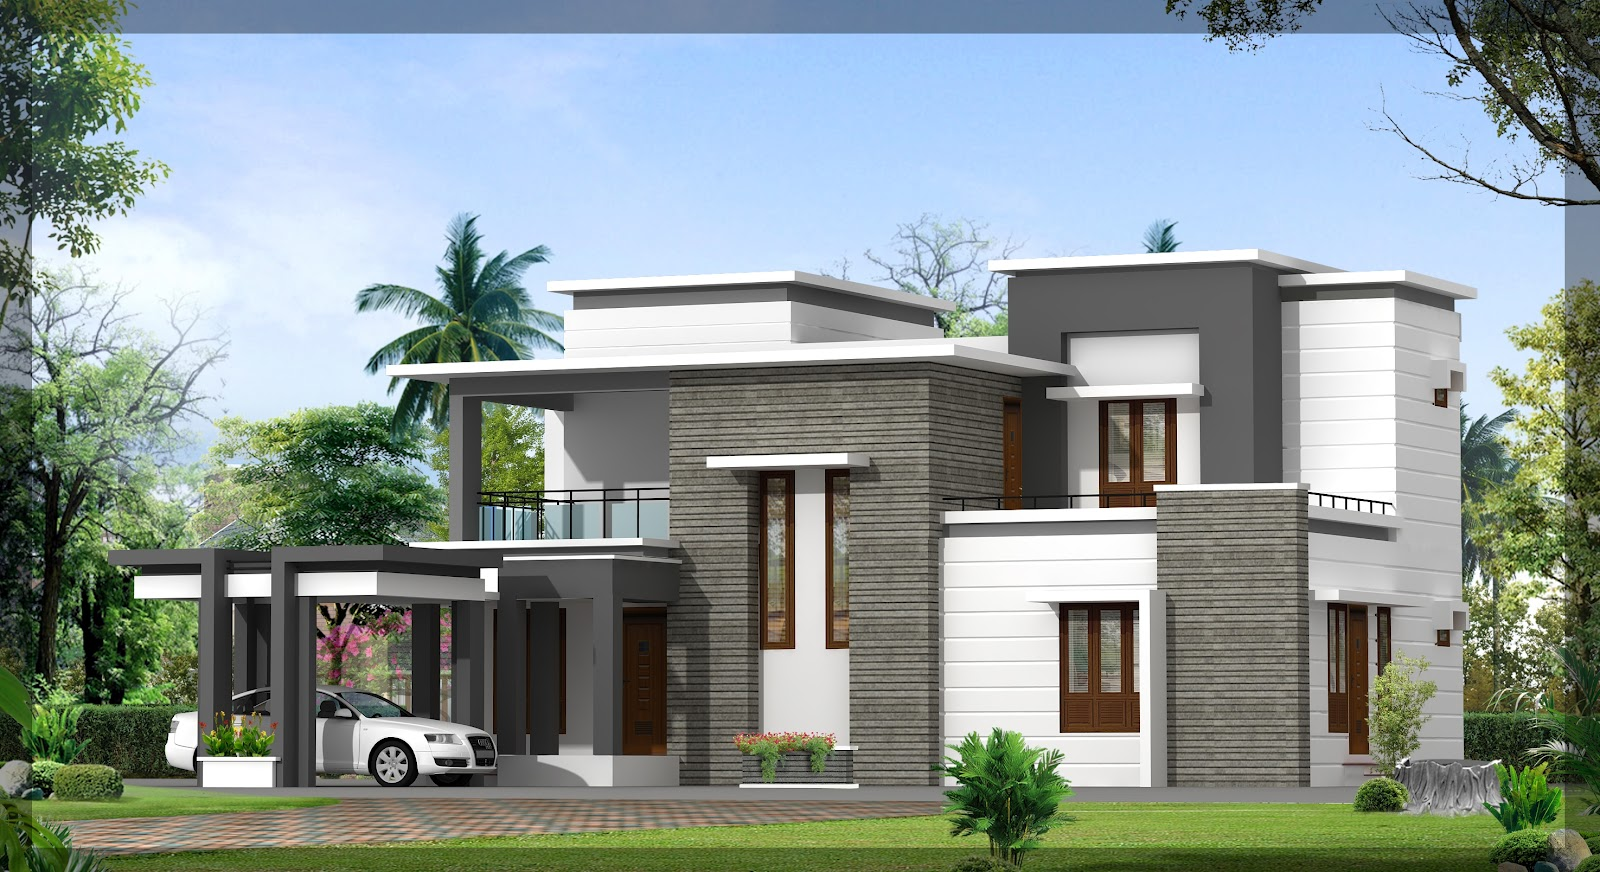 Building Plans For Houses Design Modern House With A Large Yard Home Inspiration